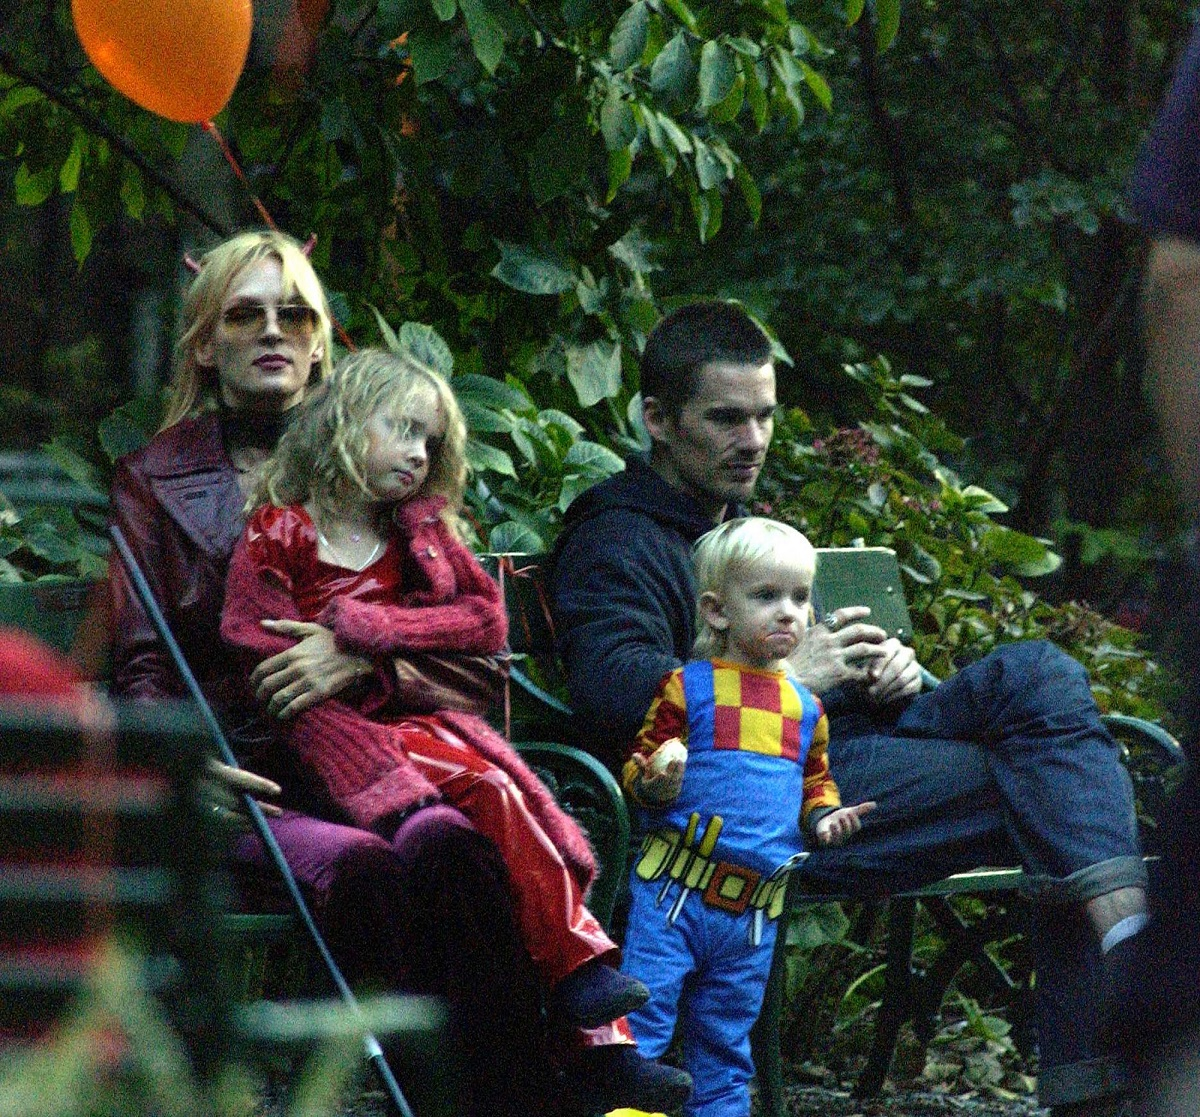 Ethan Hawk will visit Uma Thurman and his children for Halloween on October 31, 2003, in New York City.